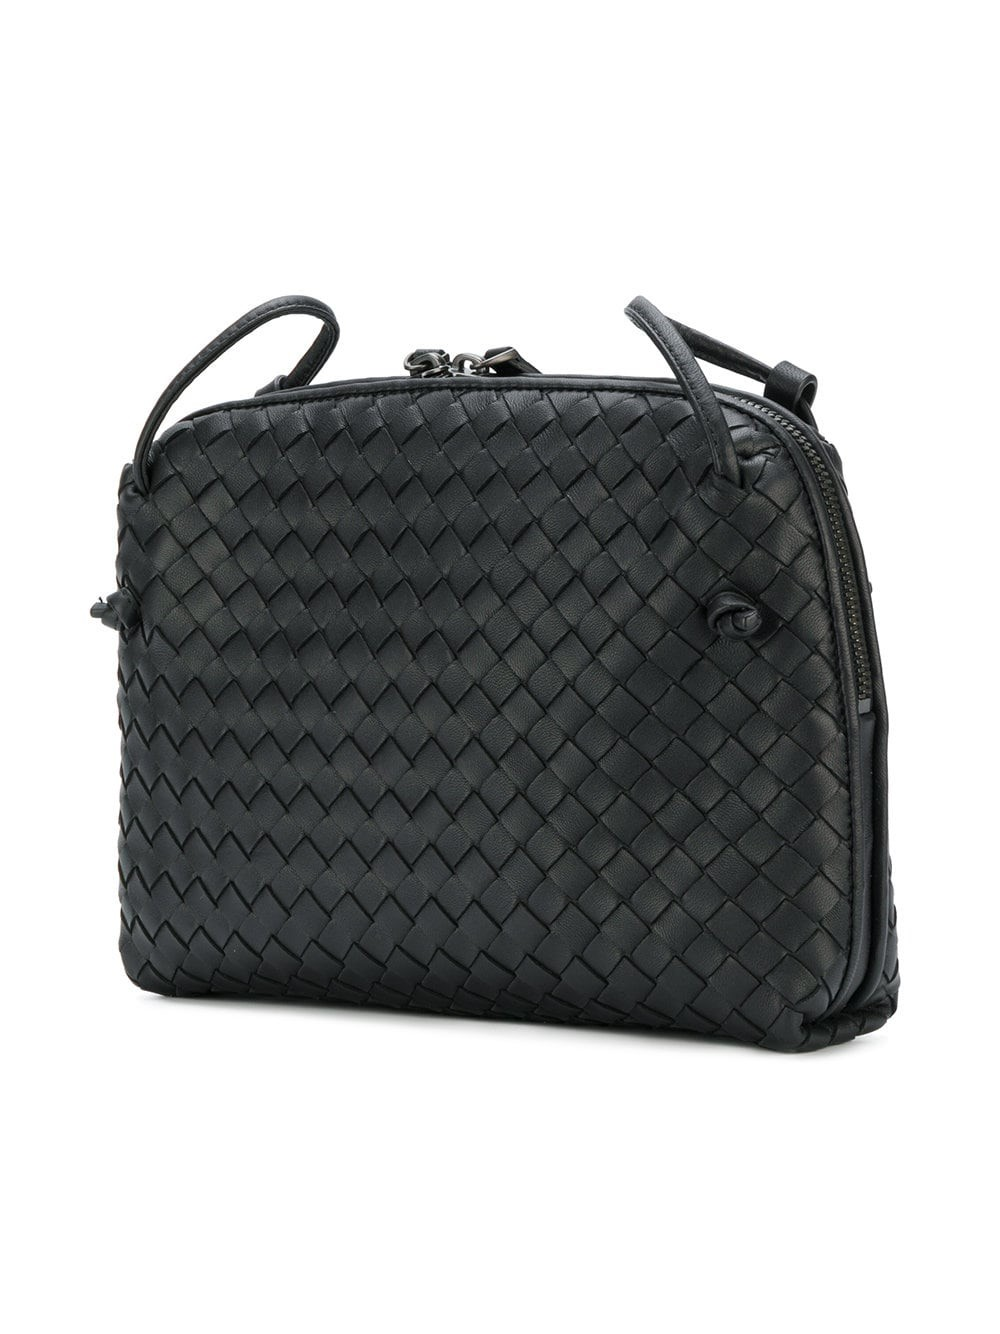 b06313149aaa bottega veneta NODINI CROSS BODY BAG available on montiboutique.com ...